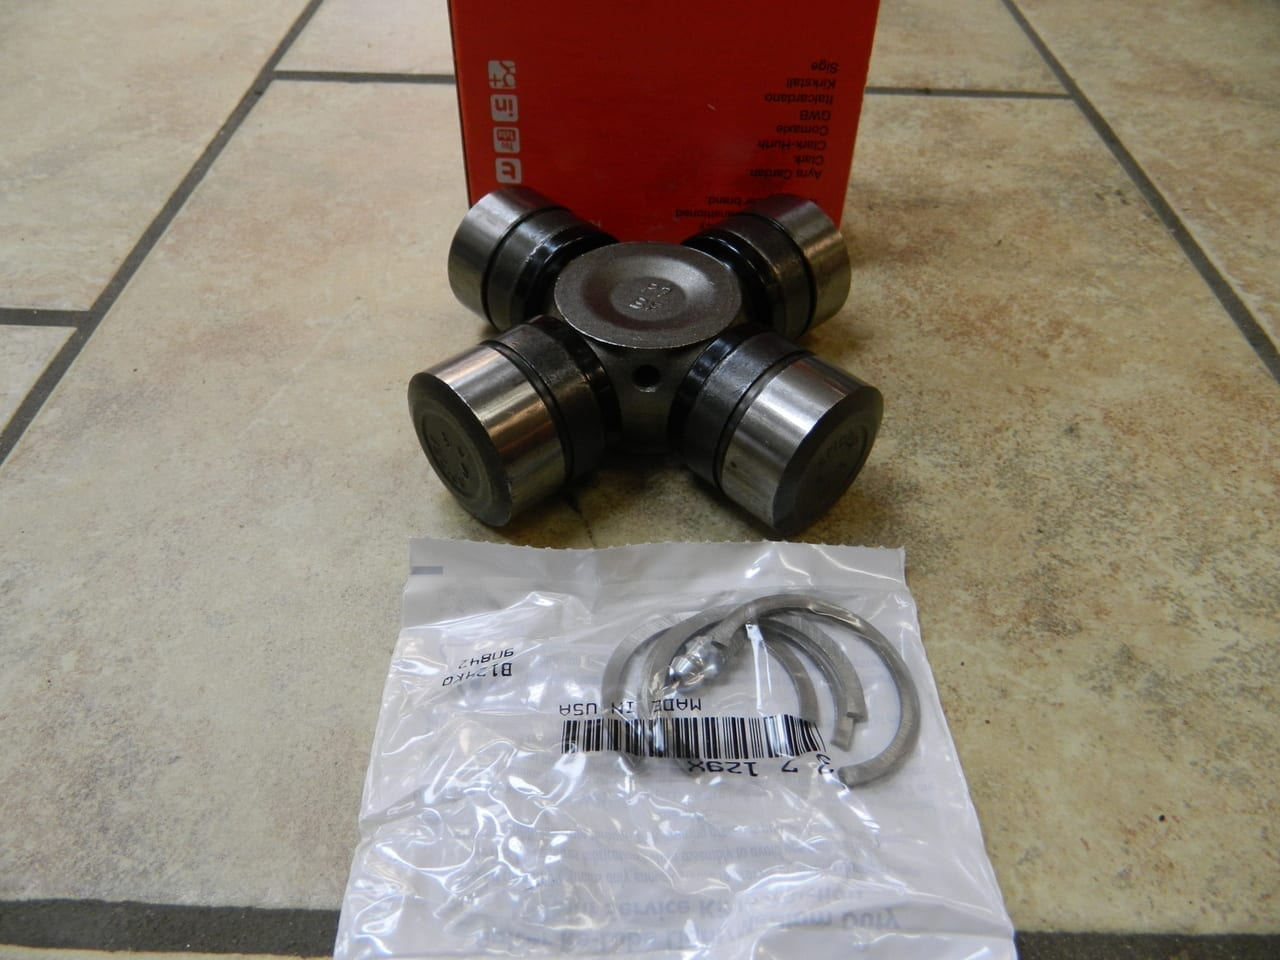 Chevy GM Dodge U-Joint Dana 50 60 Spicer SPL55-4X Greasable 1480 Universal Joint Front Axle Ford